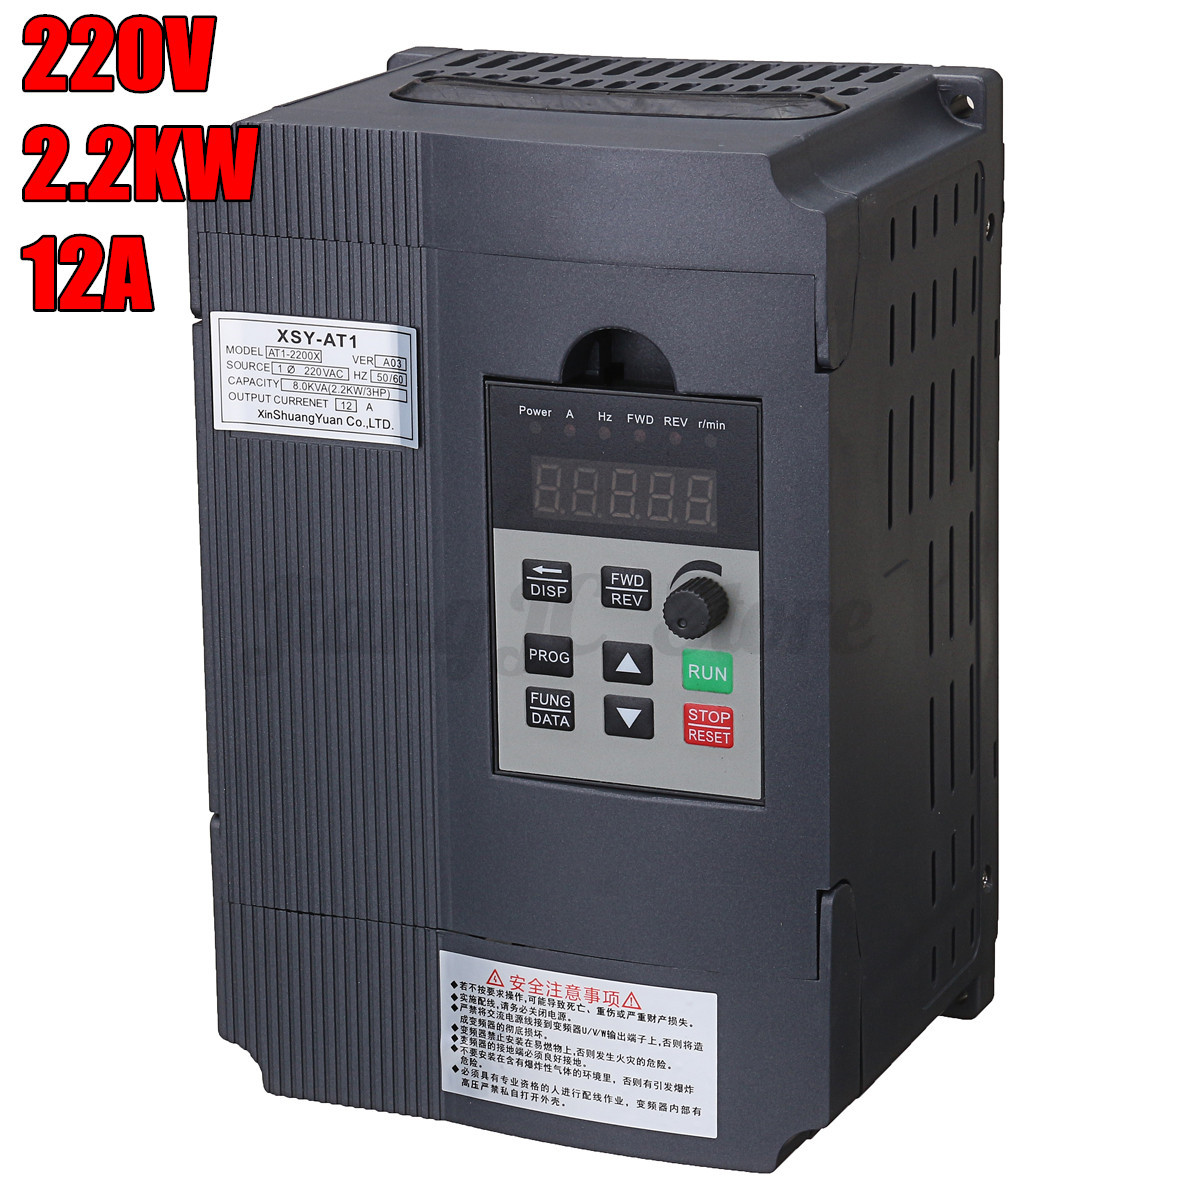 Variable frequency drive inverter 1 5kw 2 2kw 380v 220v 3hp 220v single phase motor